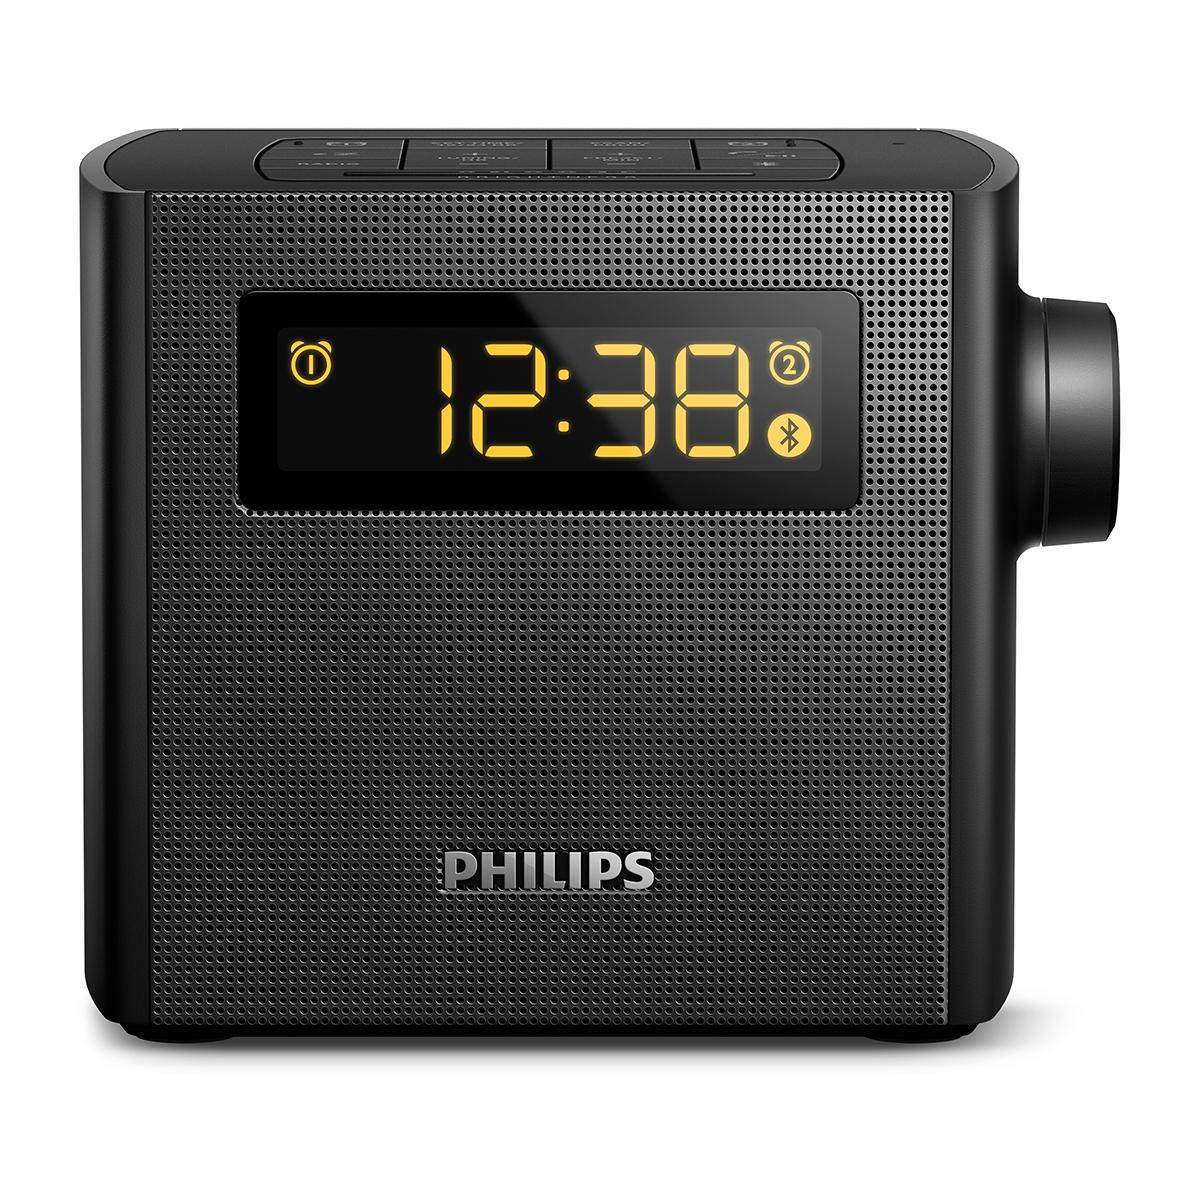 philips ajt4400b 37 bluetooth clock radio electronics. Black Bedroom Furniture Sets. Home Design Ideas